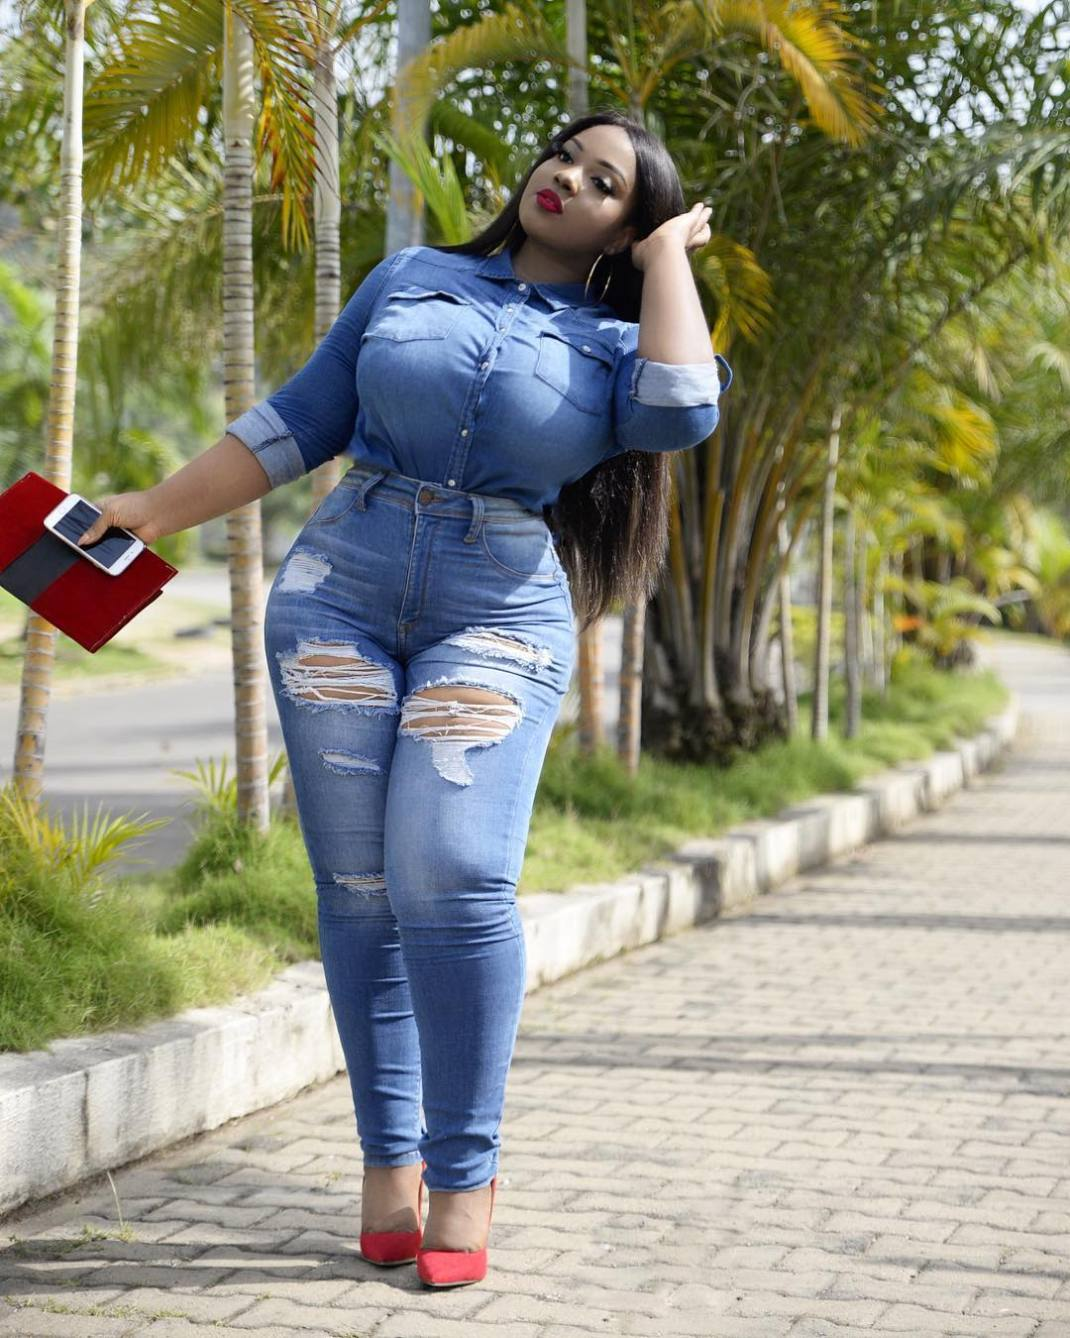 23163997 1569608886440404 7690916293913870336 n - This Curvy Influencer Will Show You How To Look Stylish If You Are Plus Size